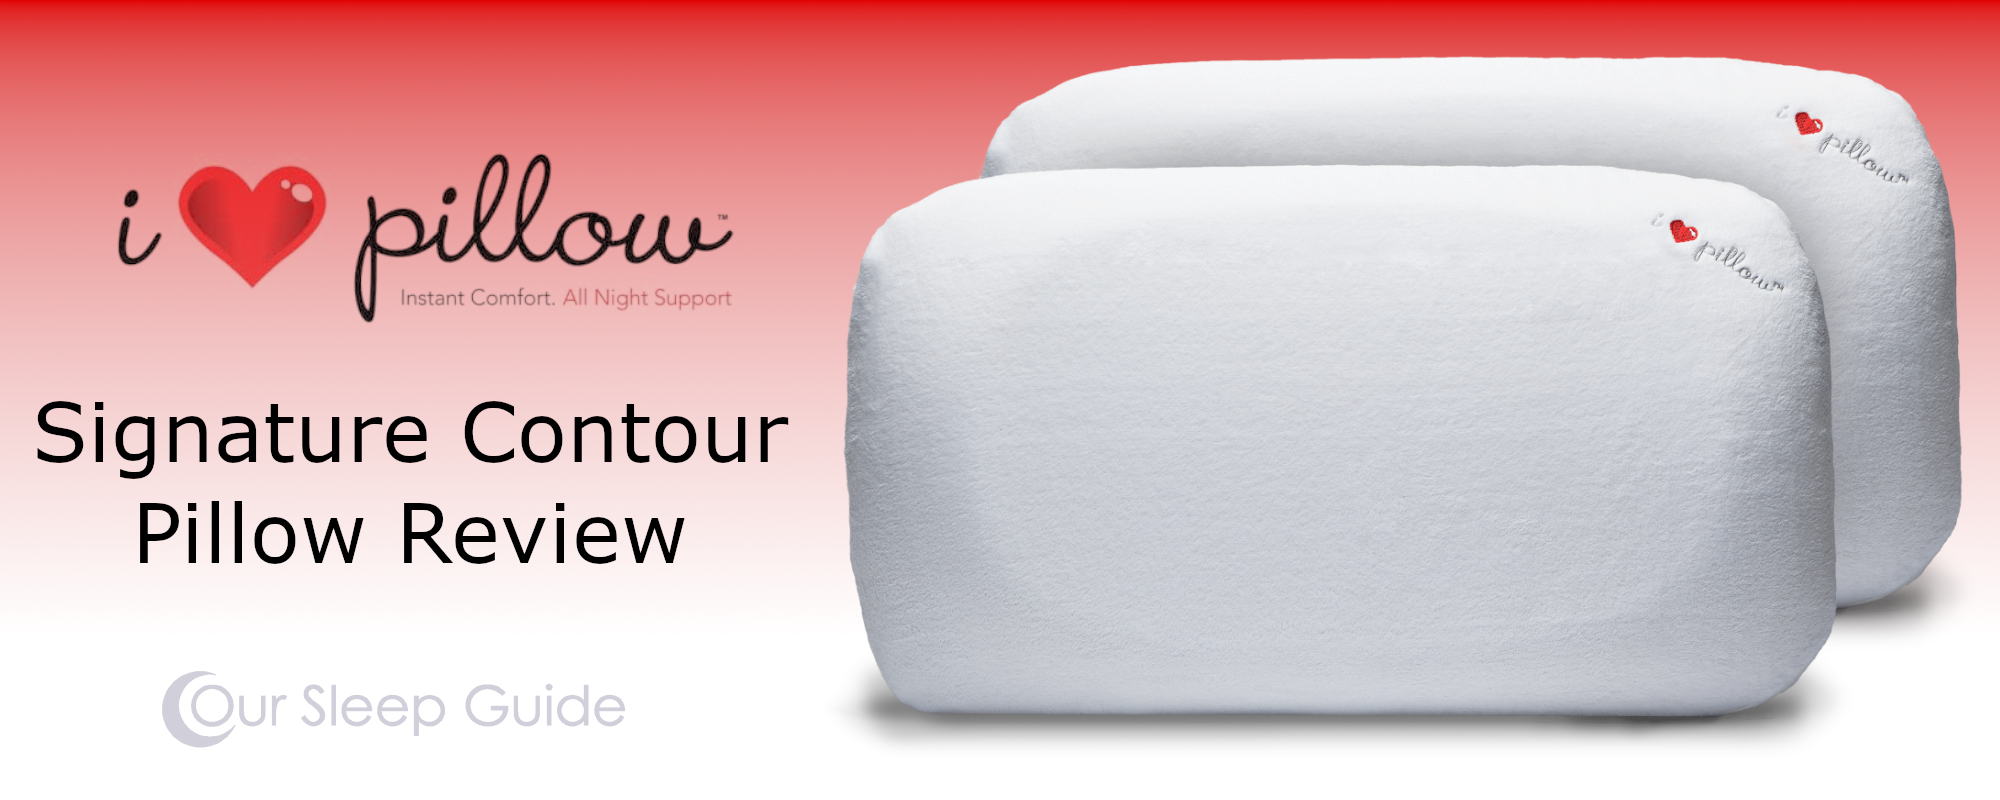 i love pillow signature contour pillow review our experience